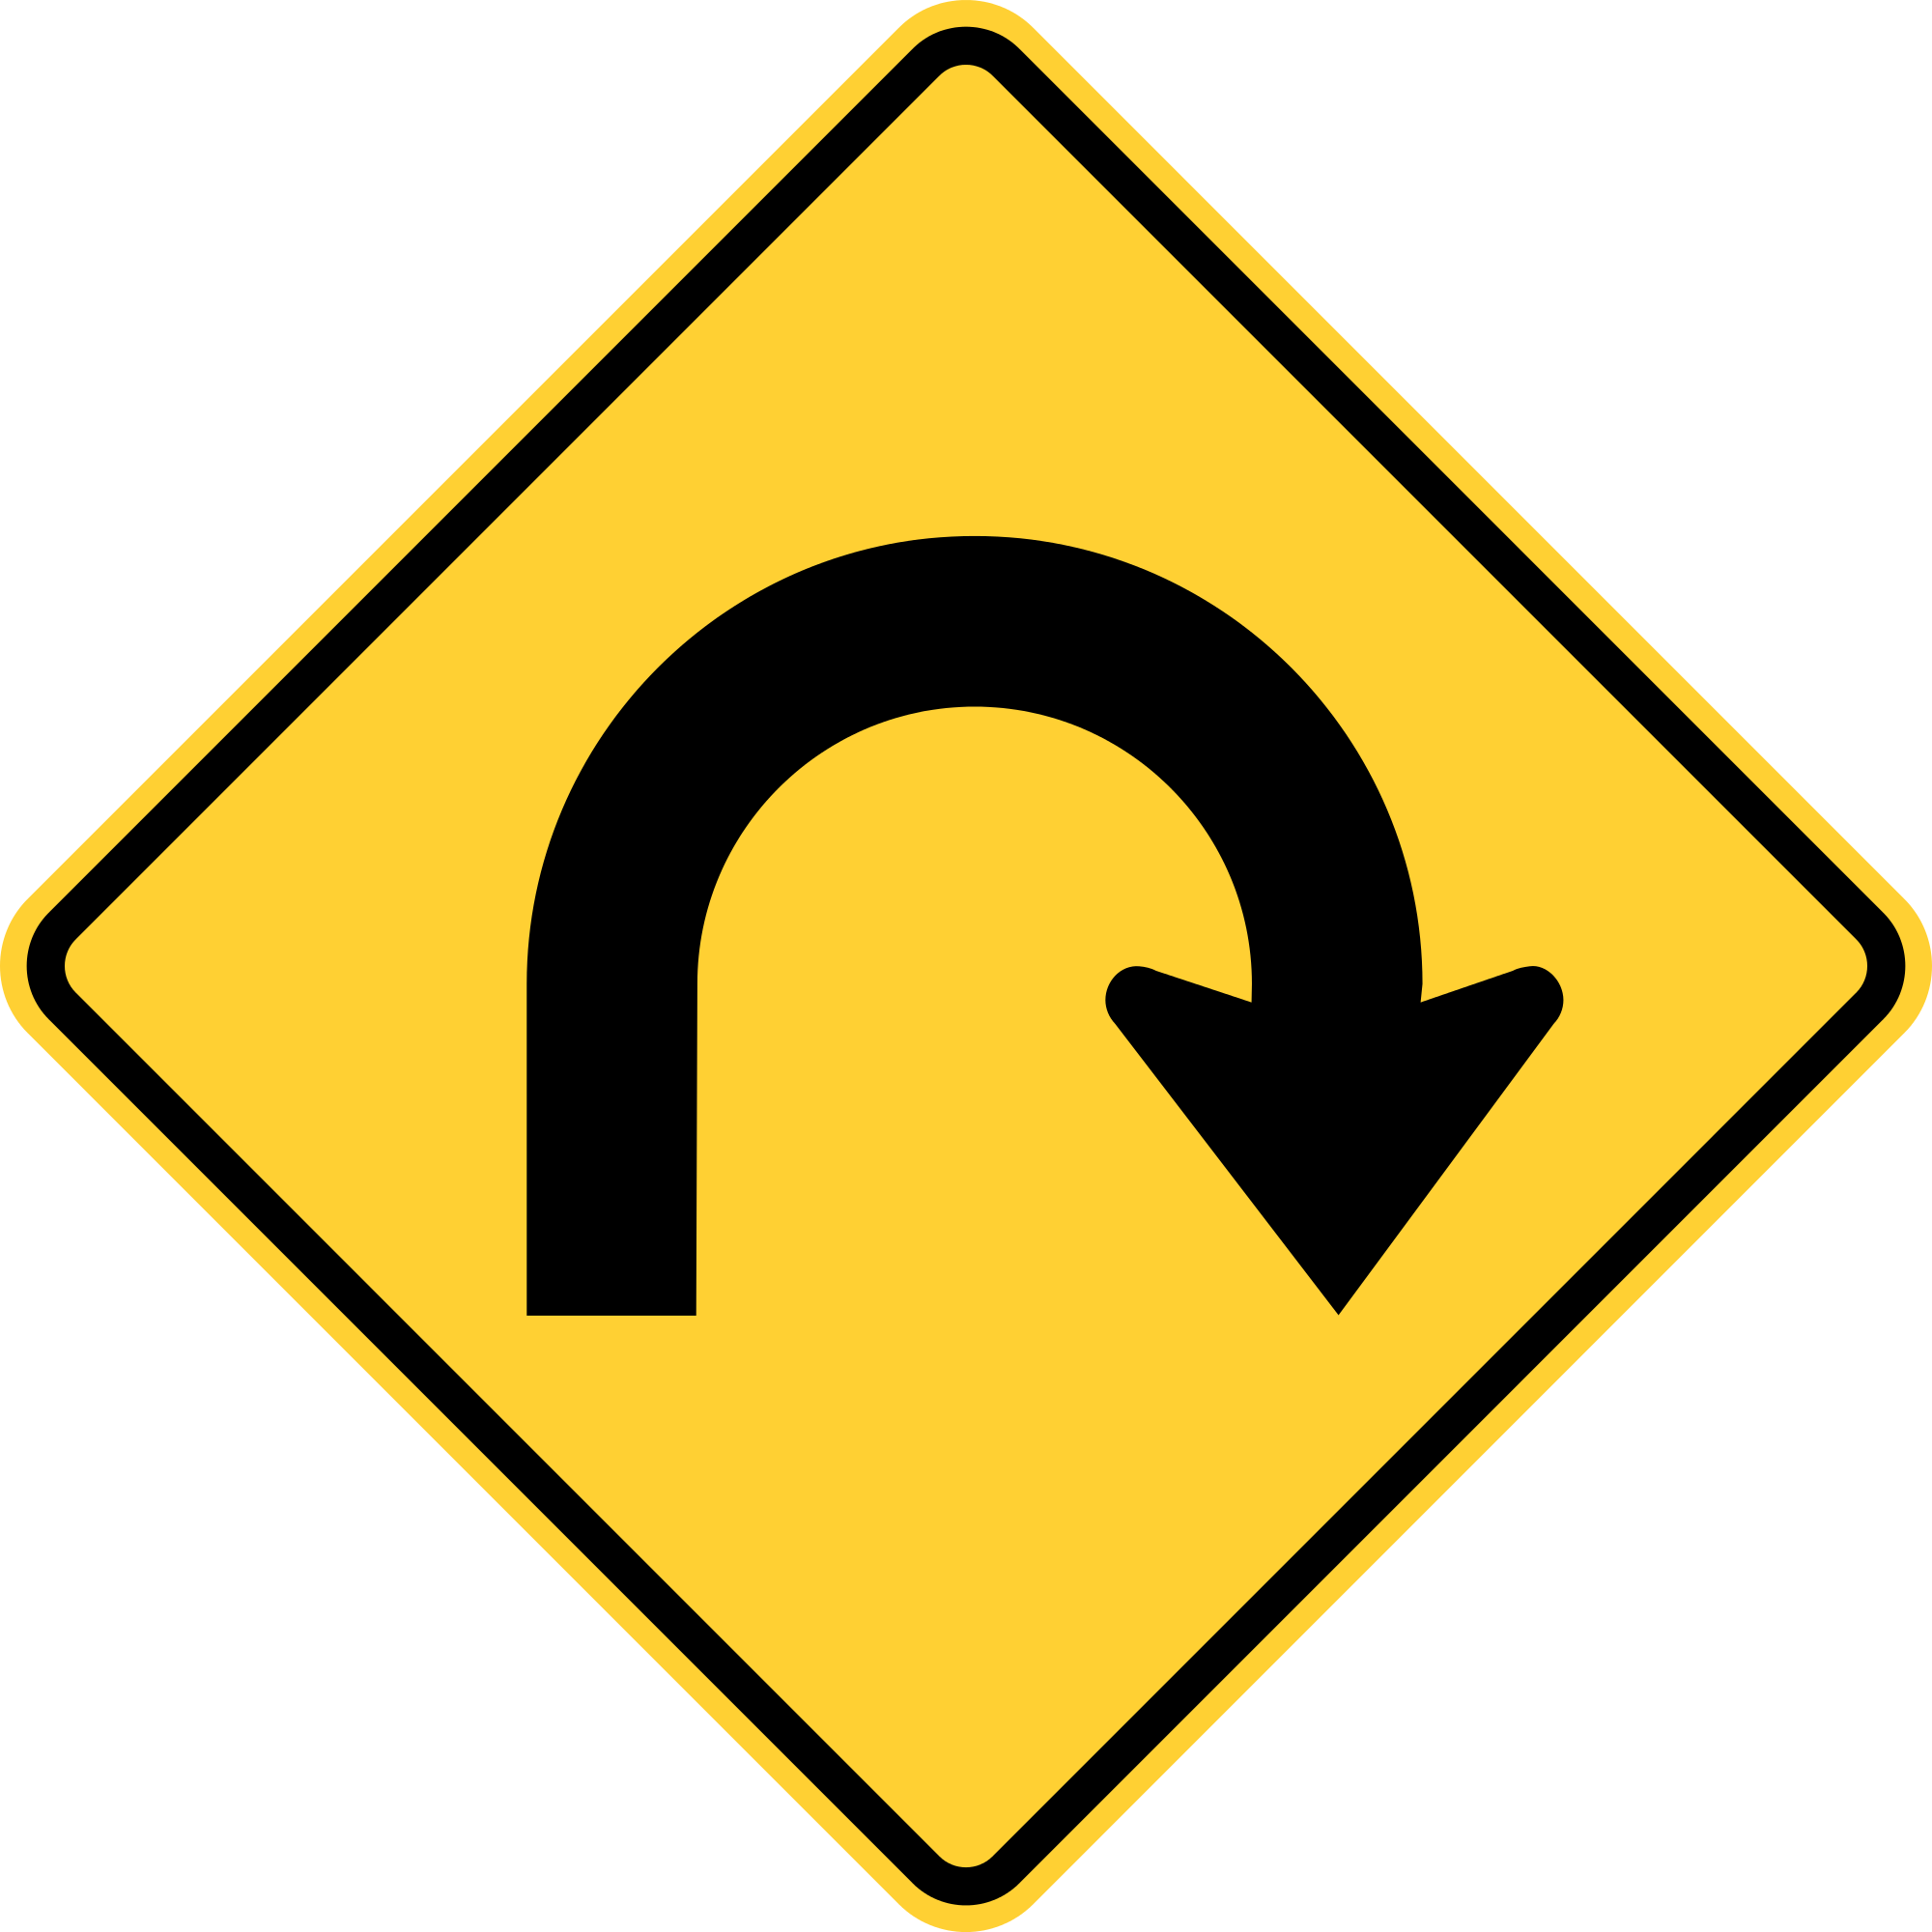 W1-11 Hairpin Curve Warning Sign